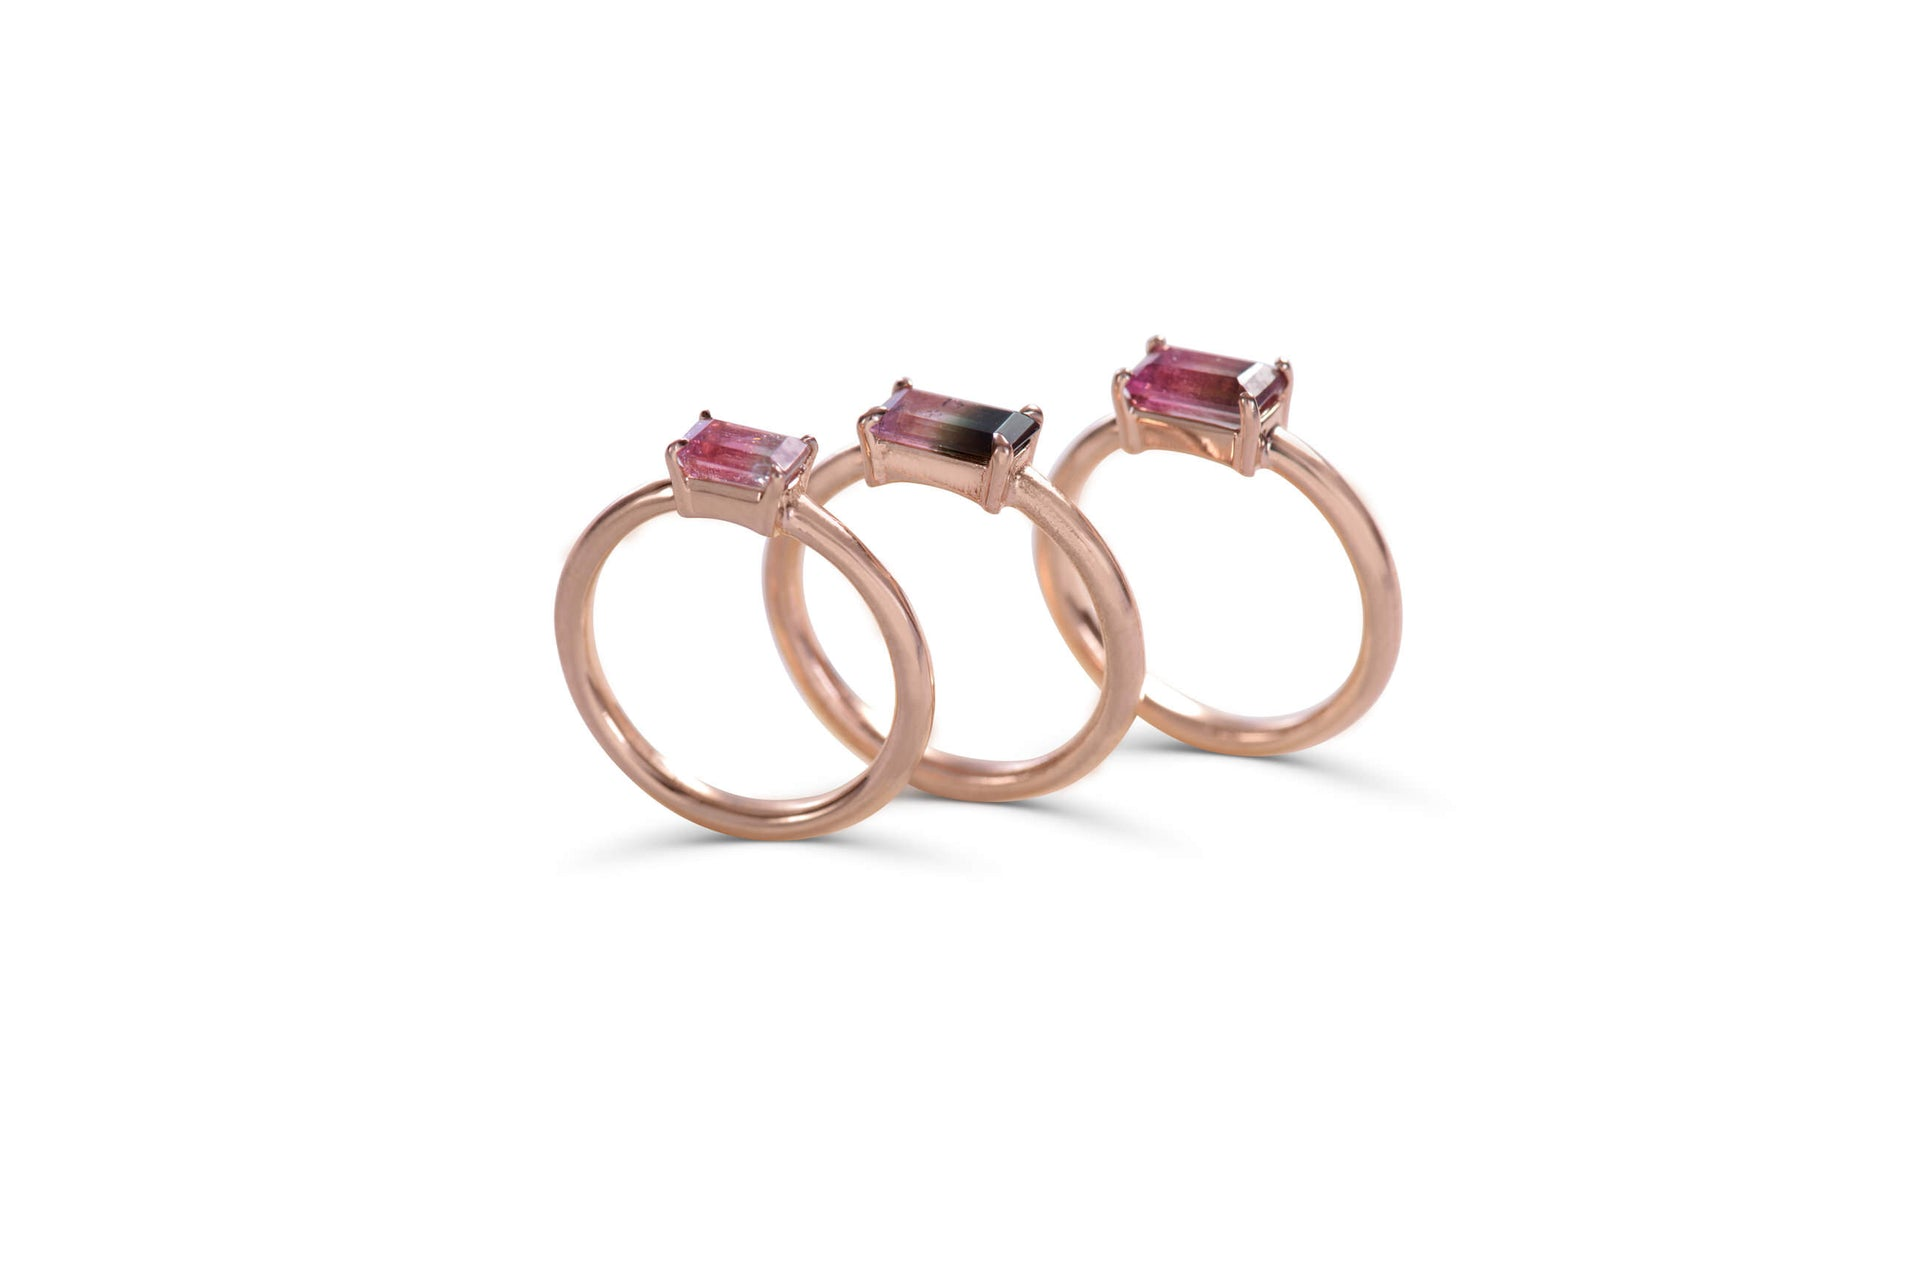 bicolor tourmaline rings 14K rose gold by KarenAsh New York